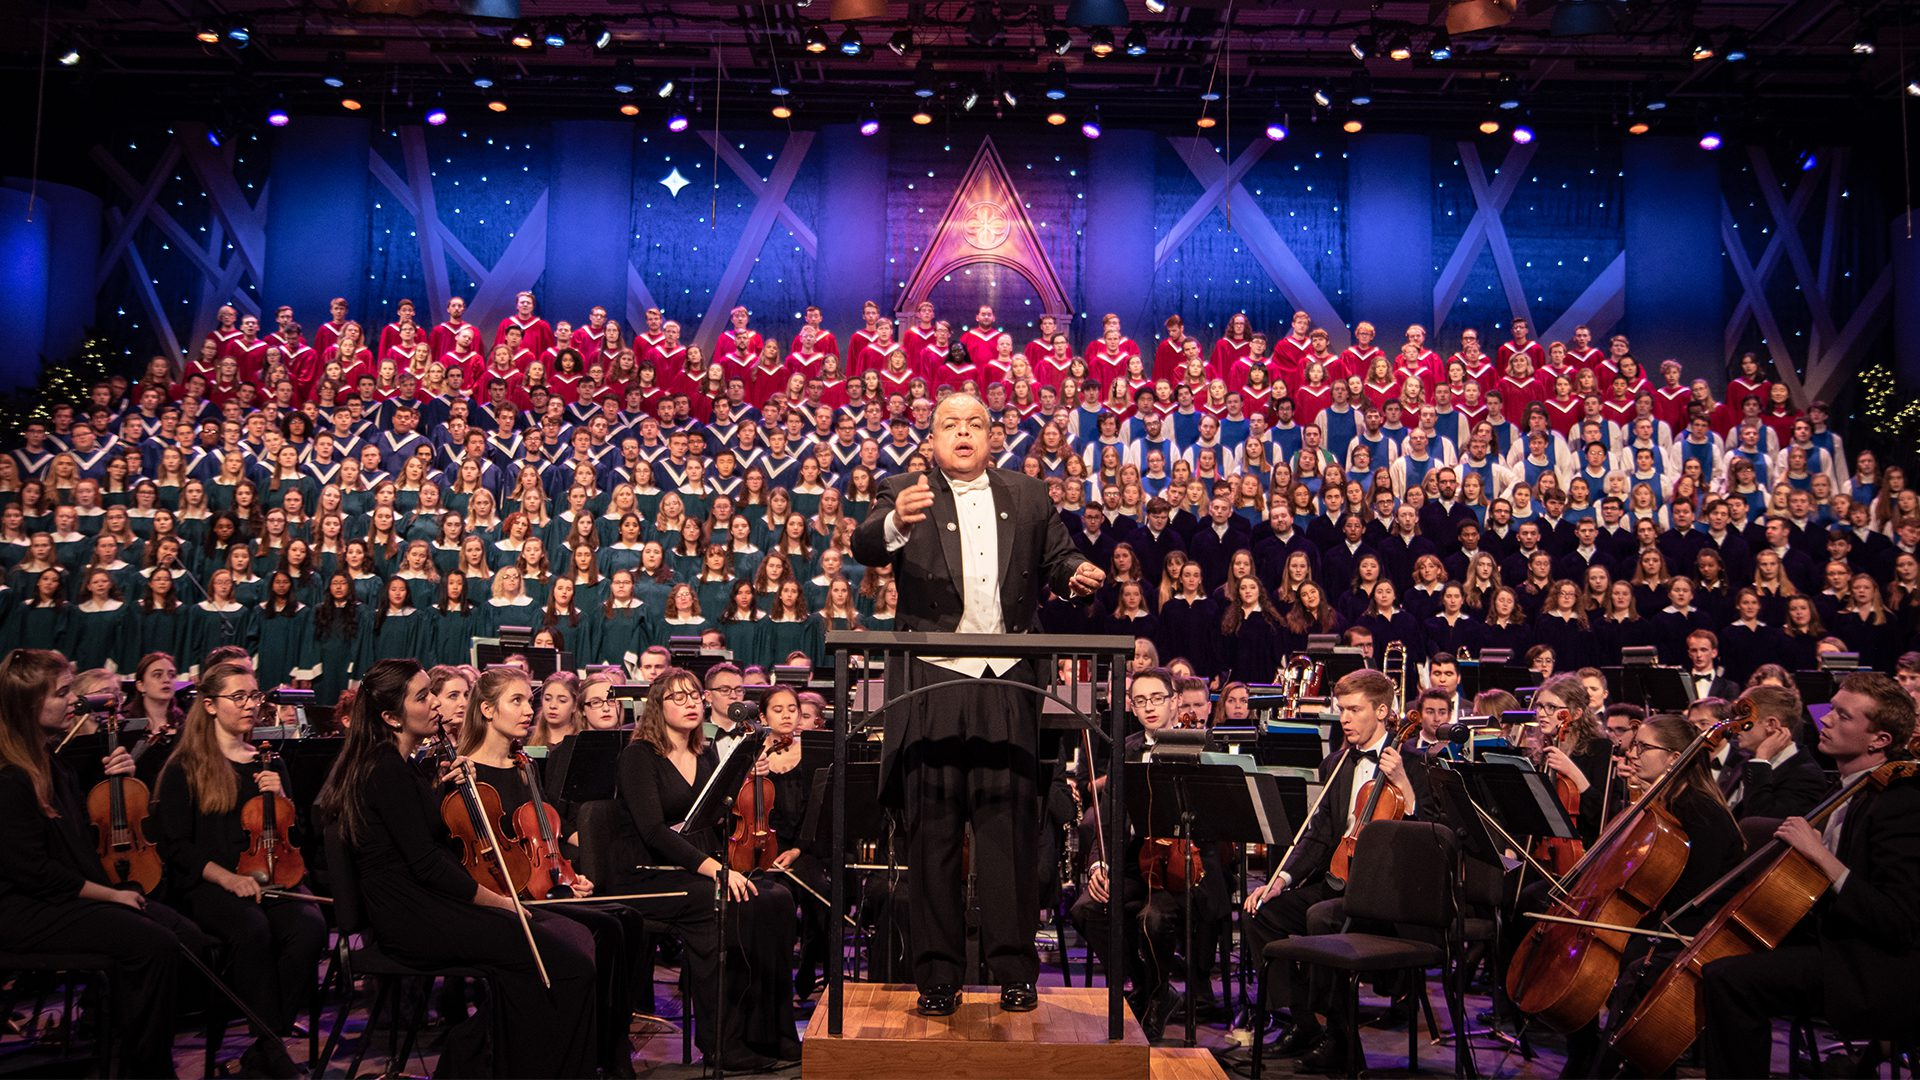 Anton Armstrong '78 conducting the massed choirs and St. Olaf Orchestra during the 2019 St. Olaf Christmas Festival.